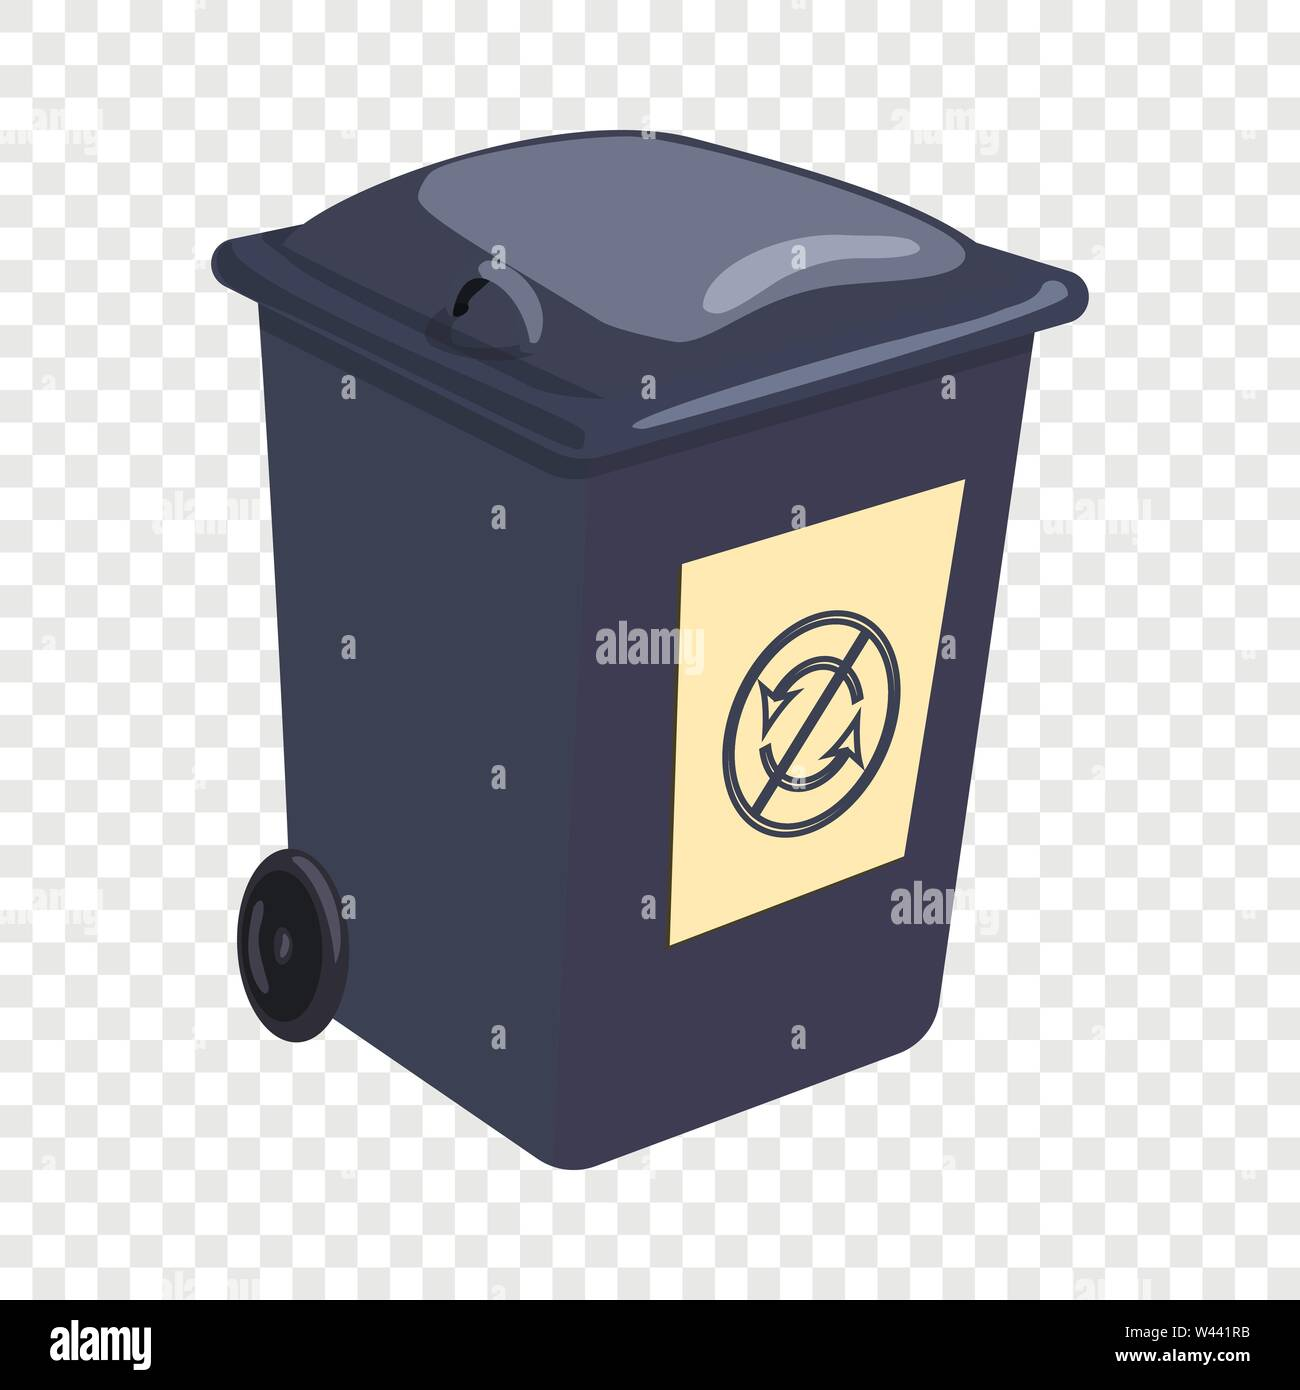 Trashcan icon, cartoon style - Stock Image